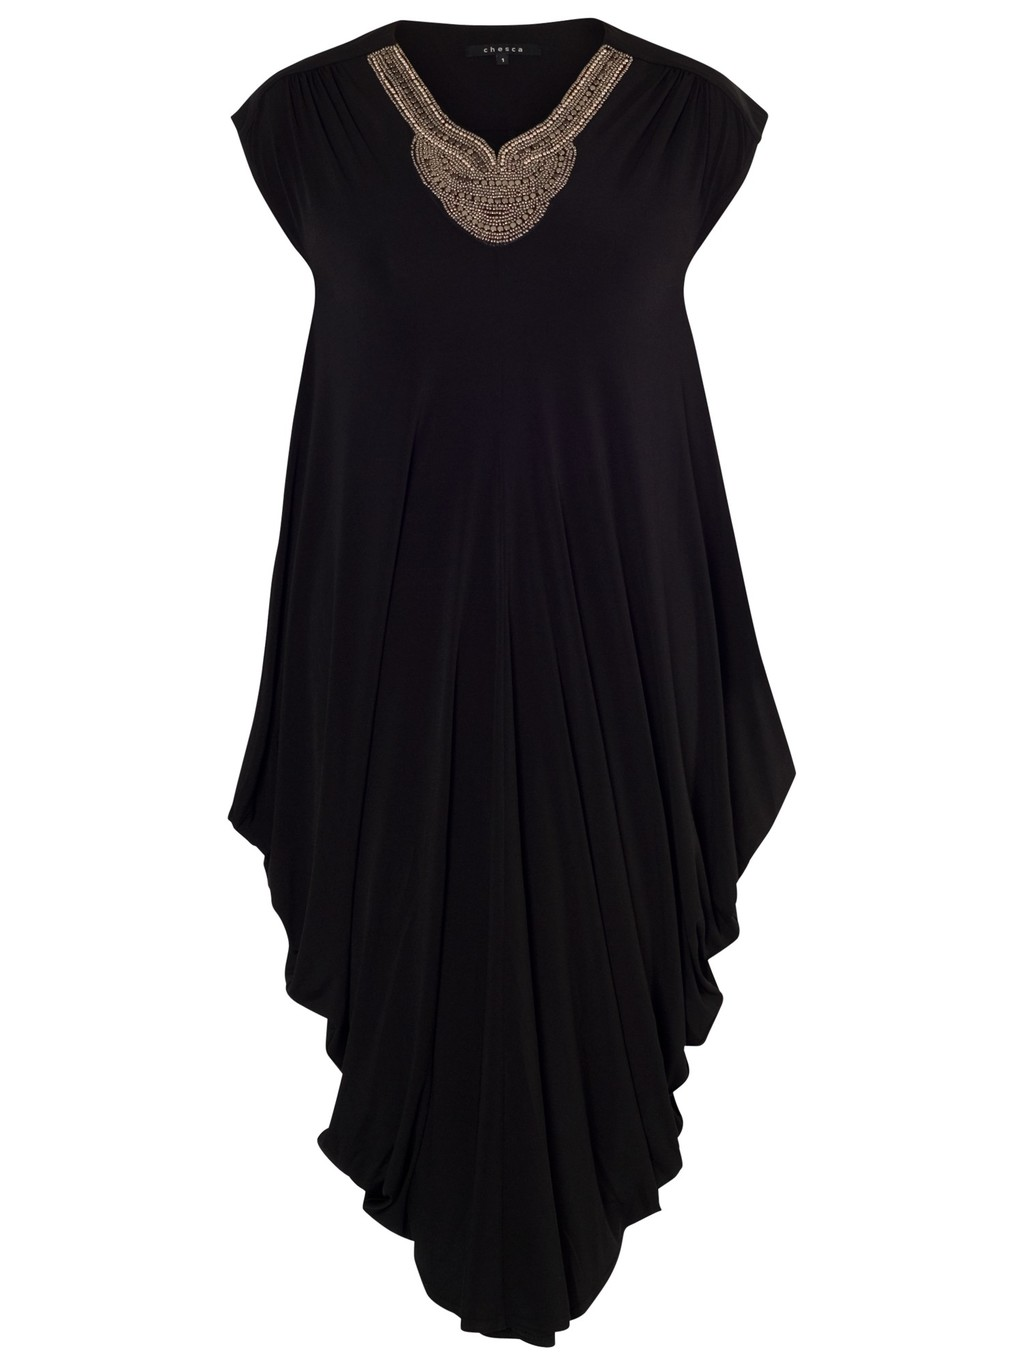 Stud Neckline Draped Dress, Black - length: calf length; neckline: v-neck; sleeve style: capped; fit: loose; pattern: plain; predominant colour: black; occasions: casual, evening; style: asymmetric (hem); fibres: viscose/rayon - stretch; sleeve length: short sleeve; pattern type: fabric; texture group: jersey - stretchy/drapey; embellishment: studs; season: s/s 2014; embellishment location: bust